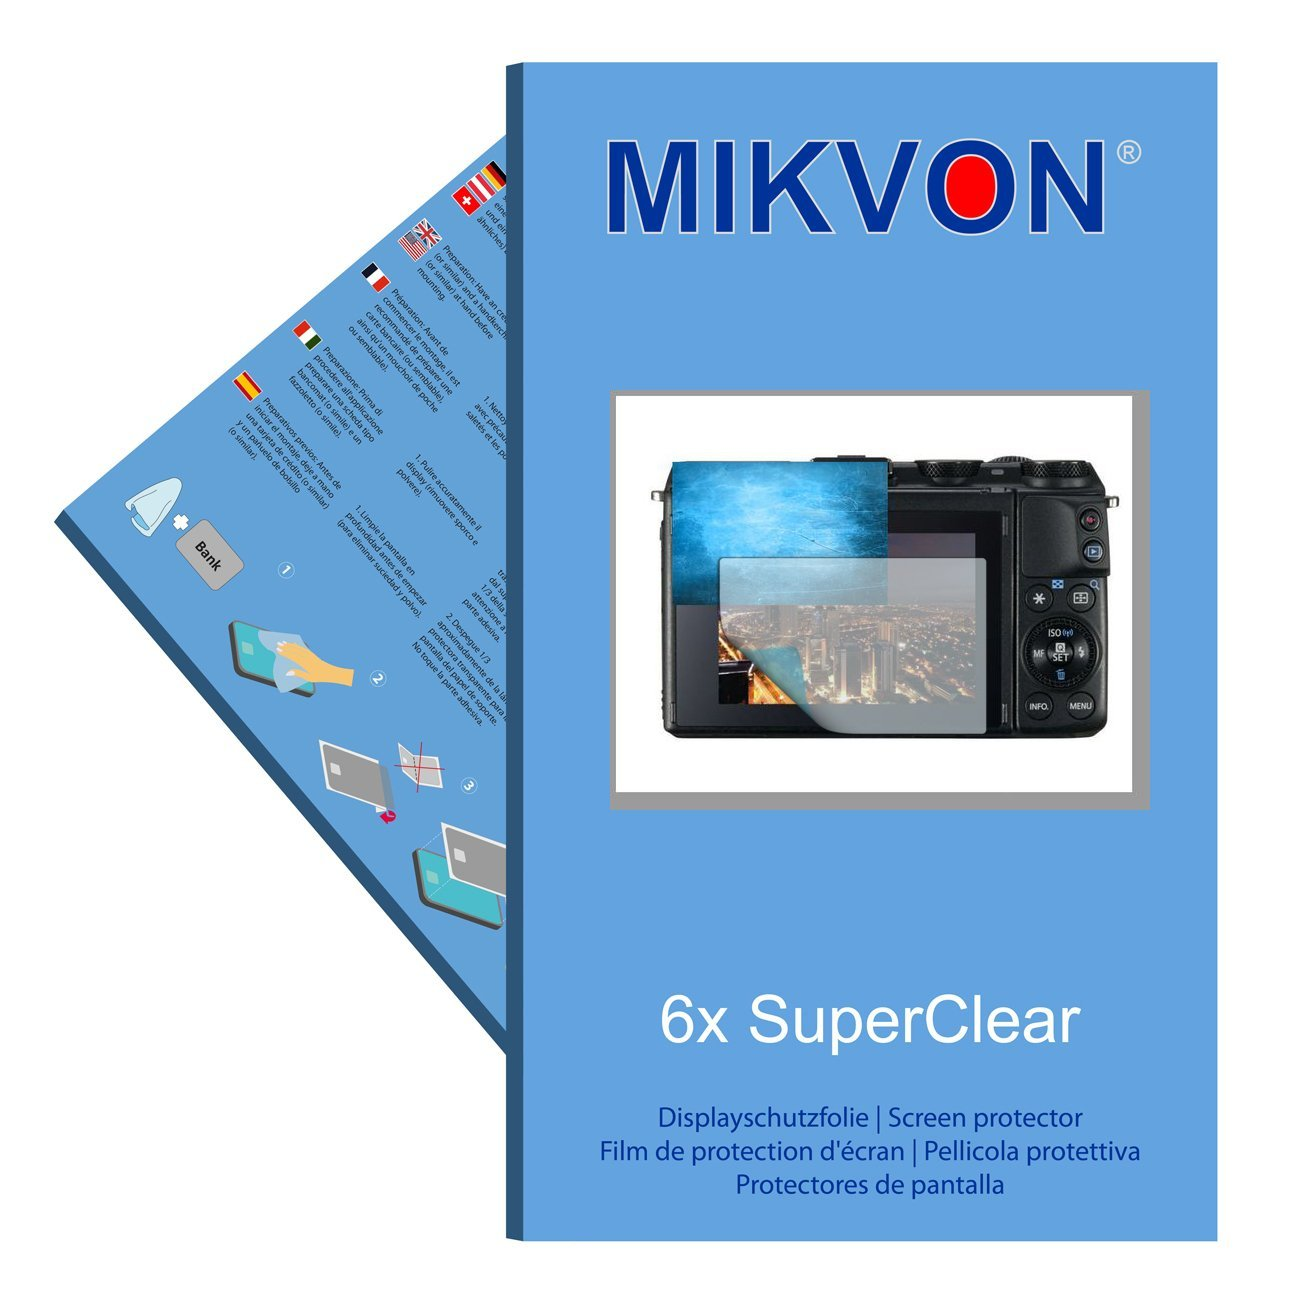 6x Mikvon films screen protector SuperClear for Canon EOS M3 - transparent - Made in Germany